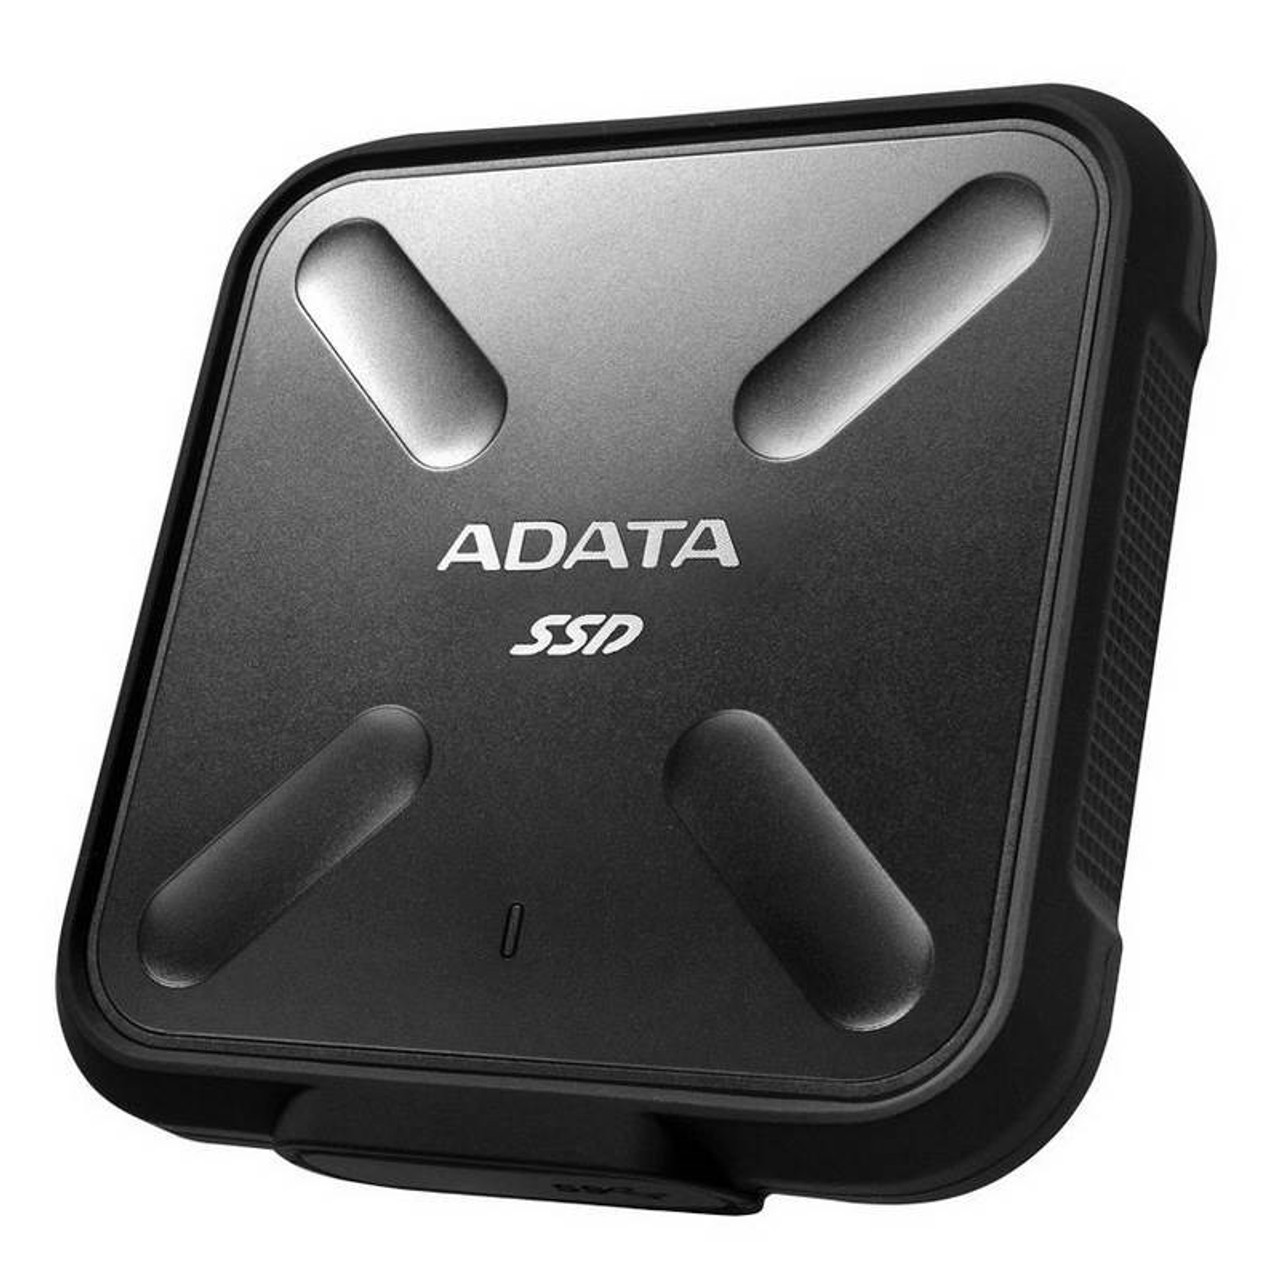 Image for Adata SD700 1TB USB 3.1 Portable External Rugged SSD Hard Drive - Black CX Computer Superstore